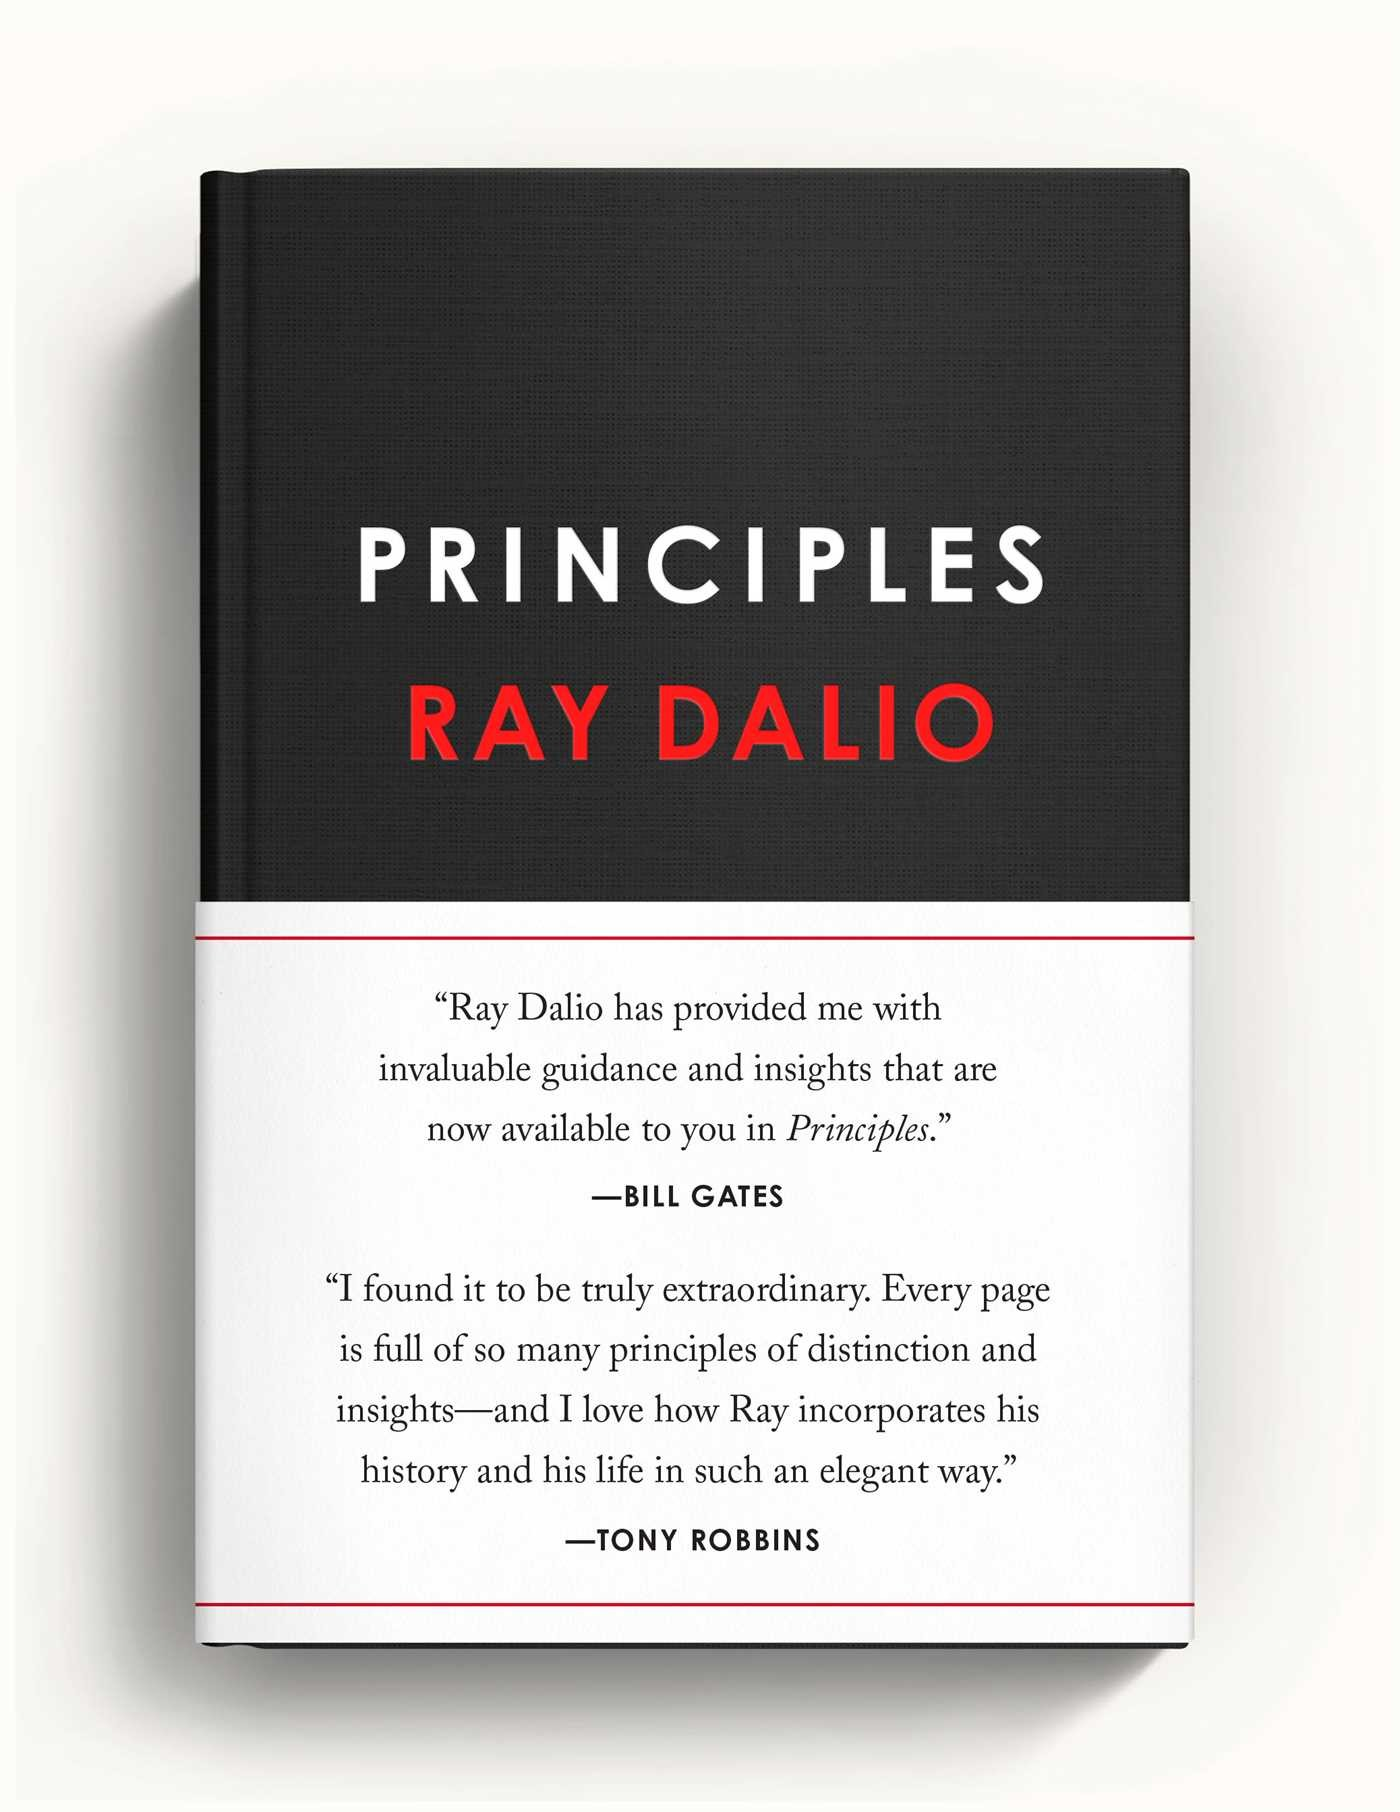 Principles by ray dalio - 500强CEO 的最佳书单